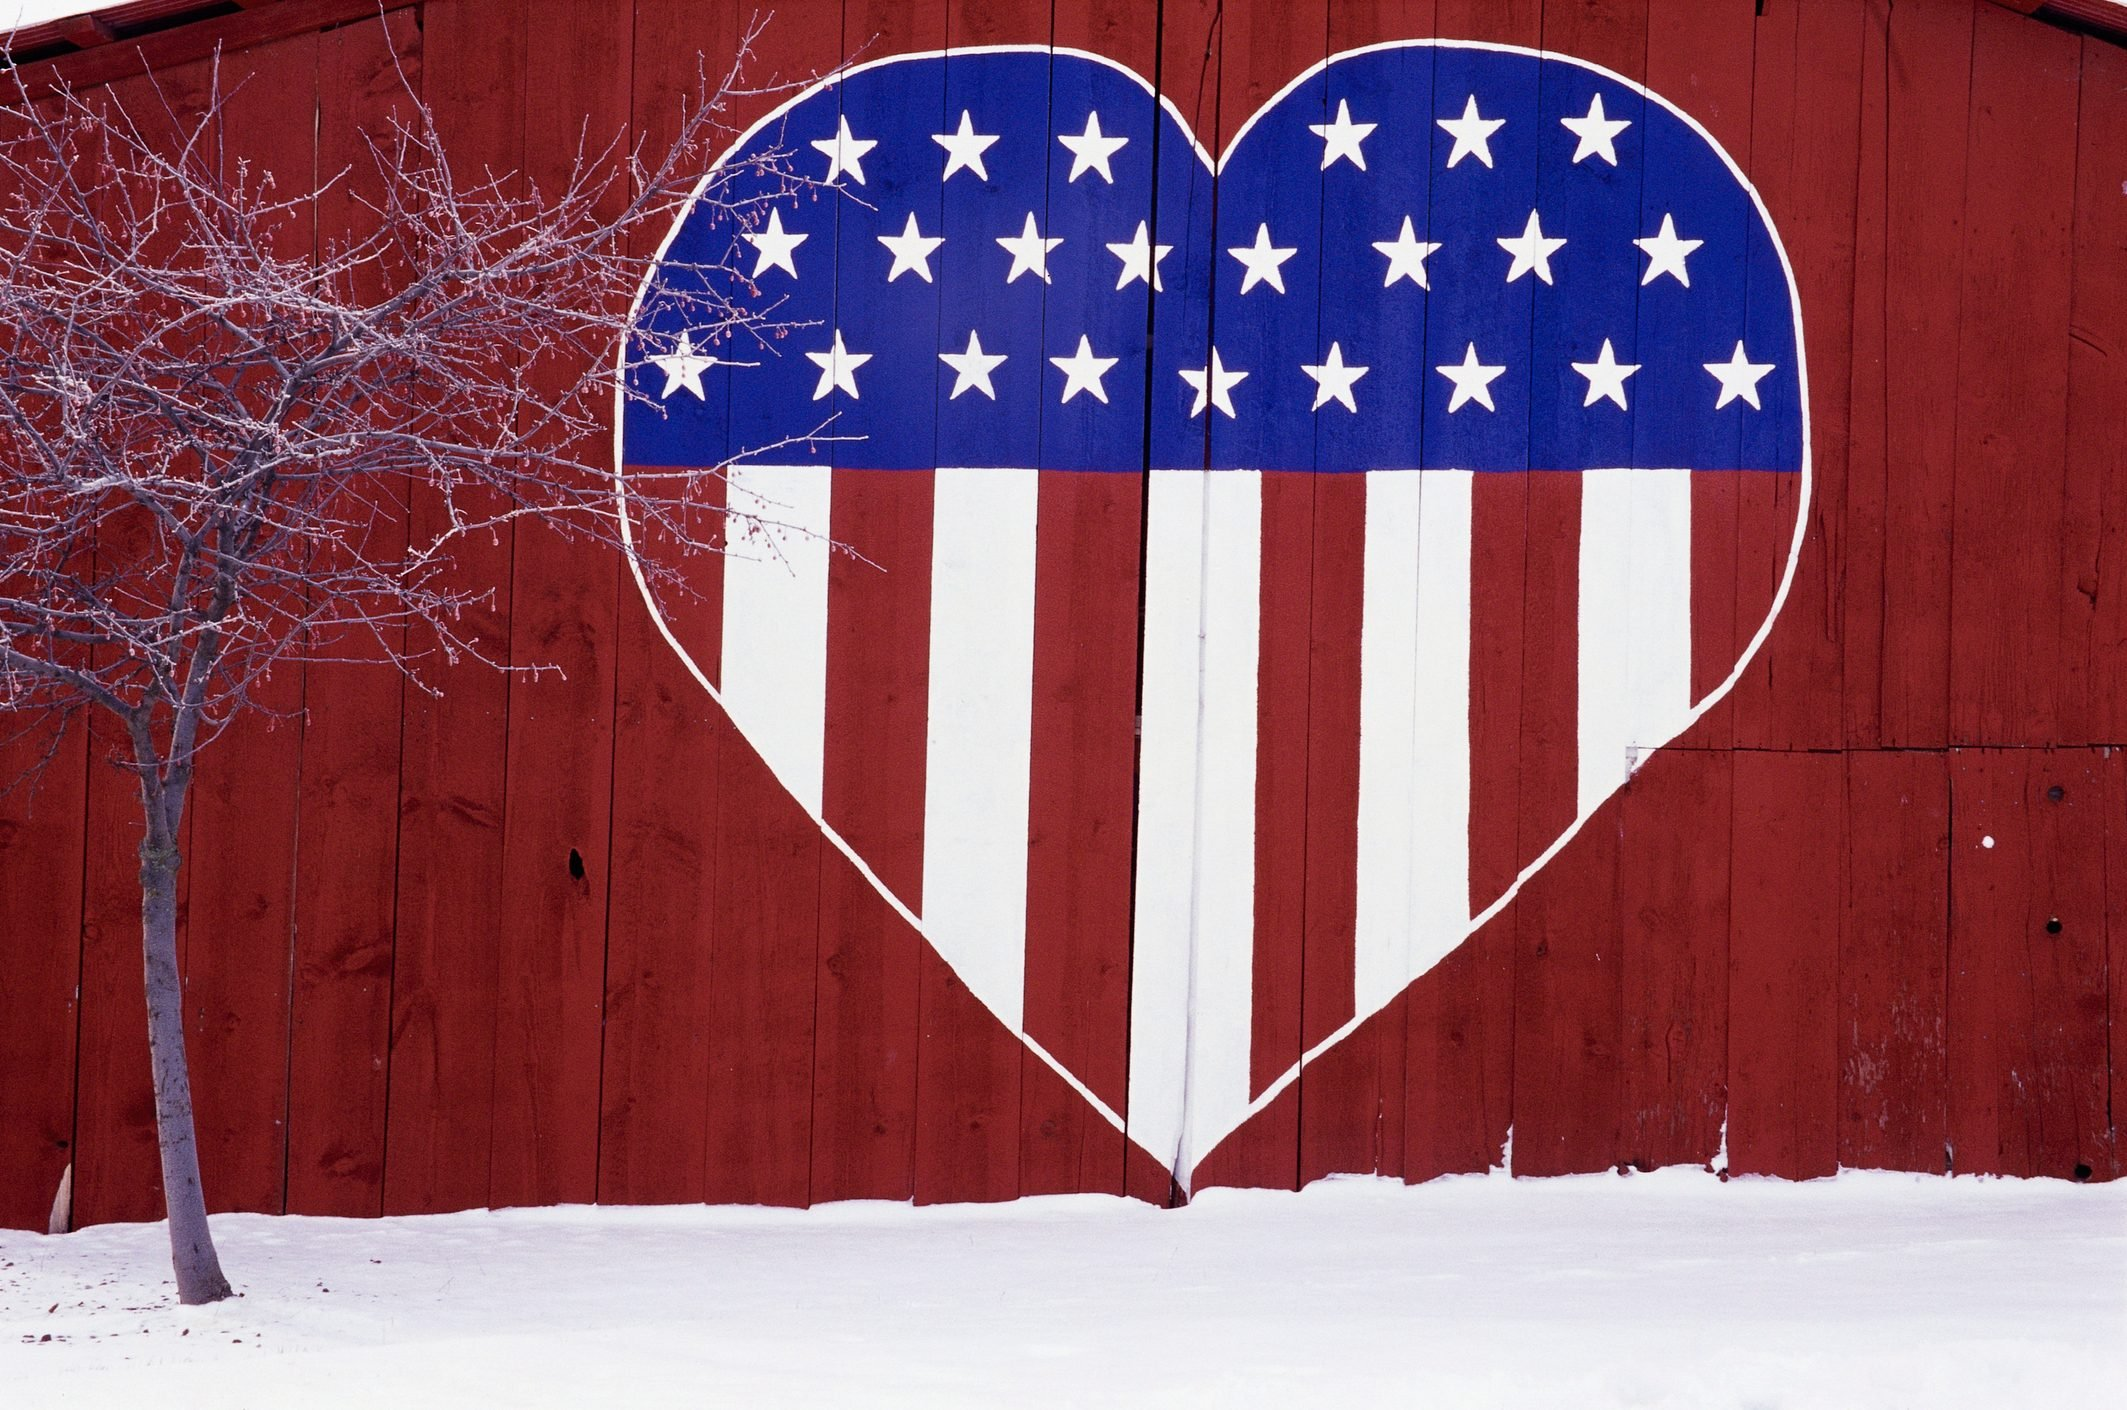 The side of a red barn in Eastern Washington State is decorated with a large heart containing the Stars and Stripes.